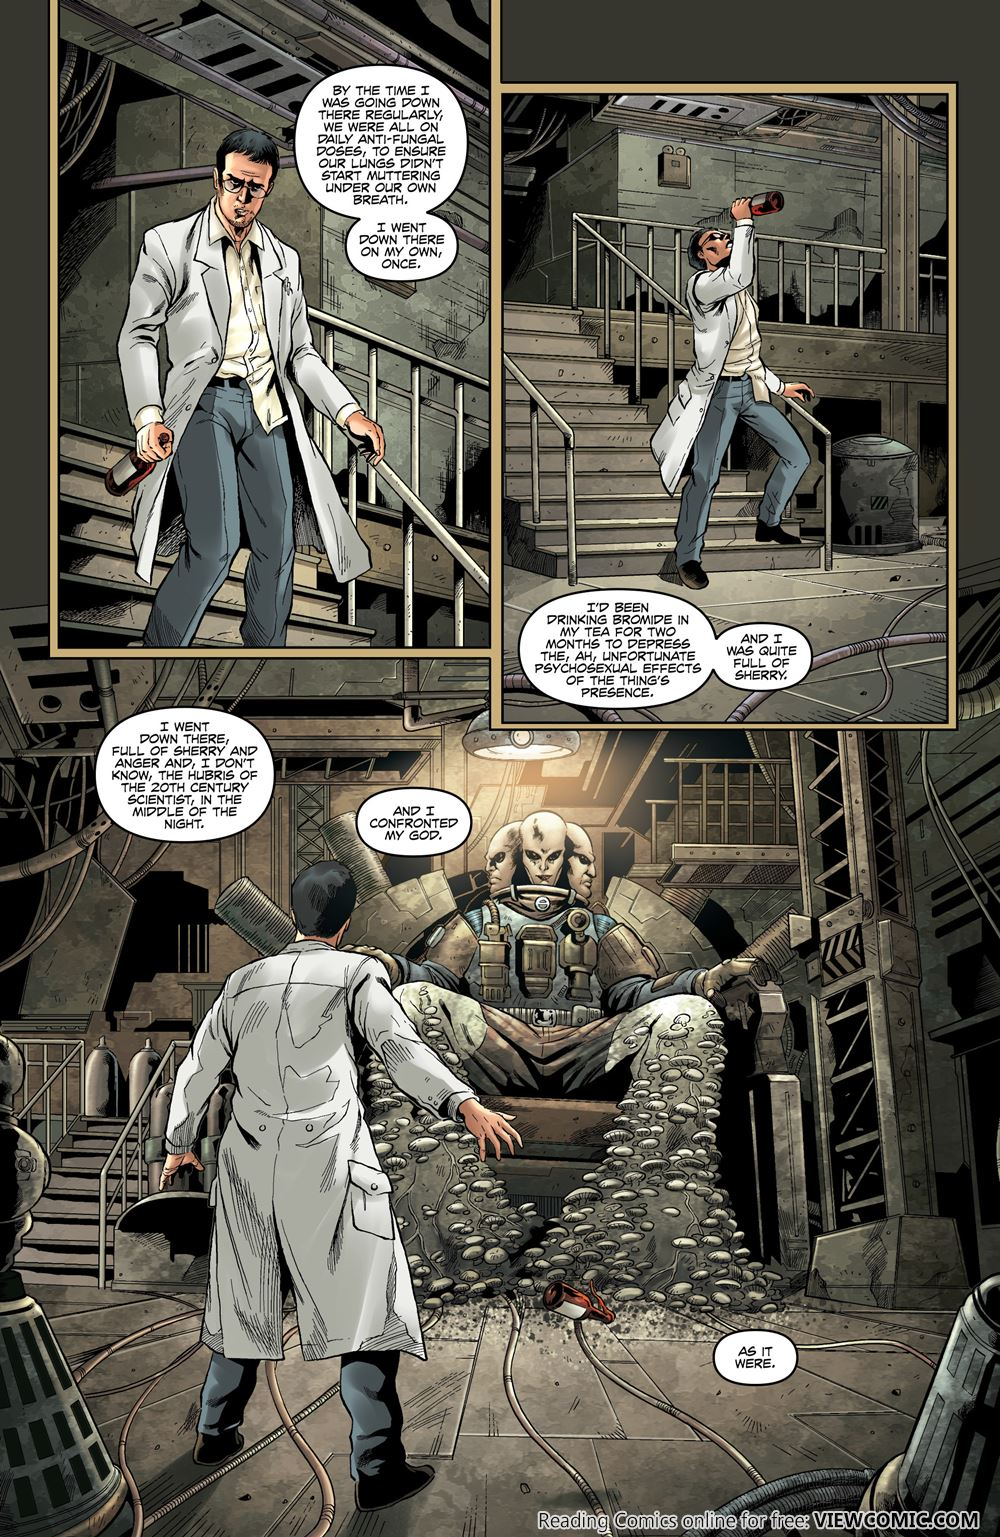 warren ellis supergod essay A page for describing creator: warren ellis warren girard ellis (born february 16, 1968) is a british comic book writer and novelist he is known for.